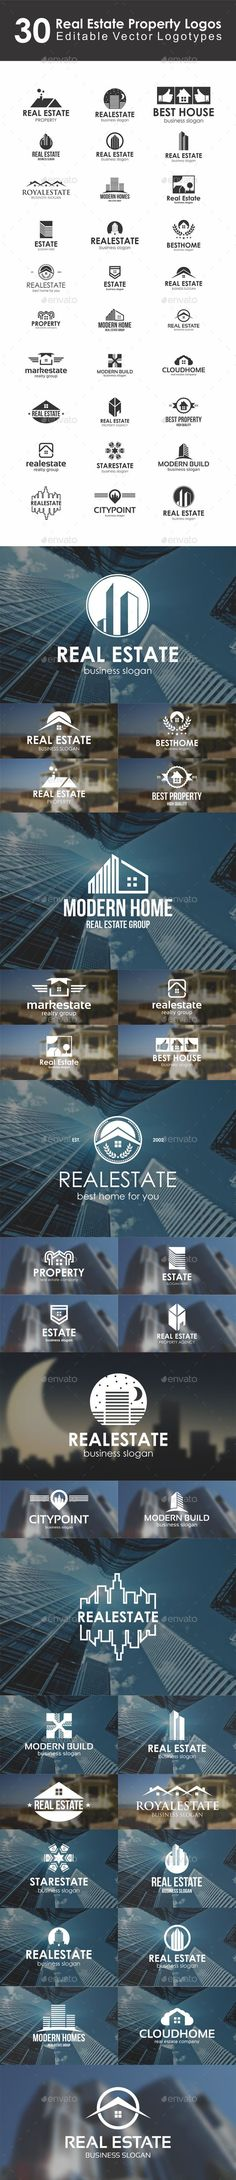 30 Real Estate Mortgage Property Logos / Logo Emblems / Personal Identity Logotype / Badges / Labels. – Editable Vector Logotypes Bundle / Collection. Professional and elegant logos suitable for construction, real estate, realty, mortgage, property business, building company, builders, hotel and resort business, etc. It stands out and instantly recognizable. Perfect for Property seller or buyers, properties management, rent service, Housing agents, mortgage or home developers.: